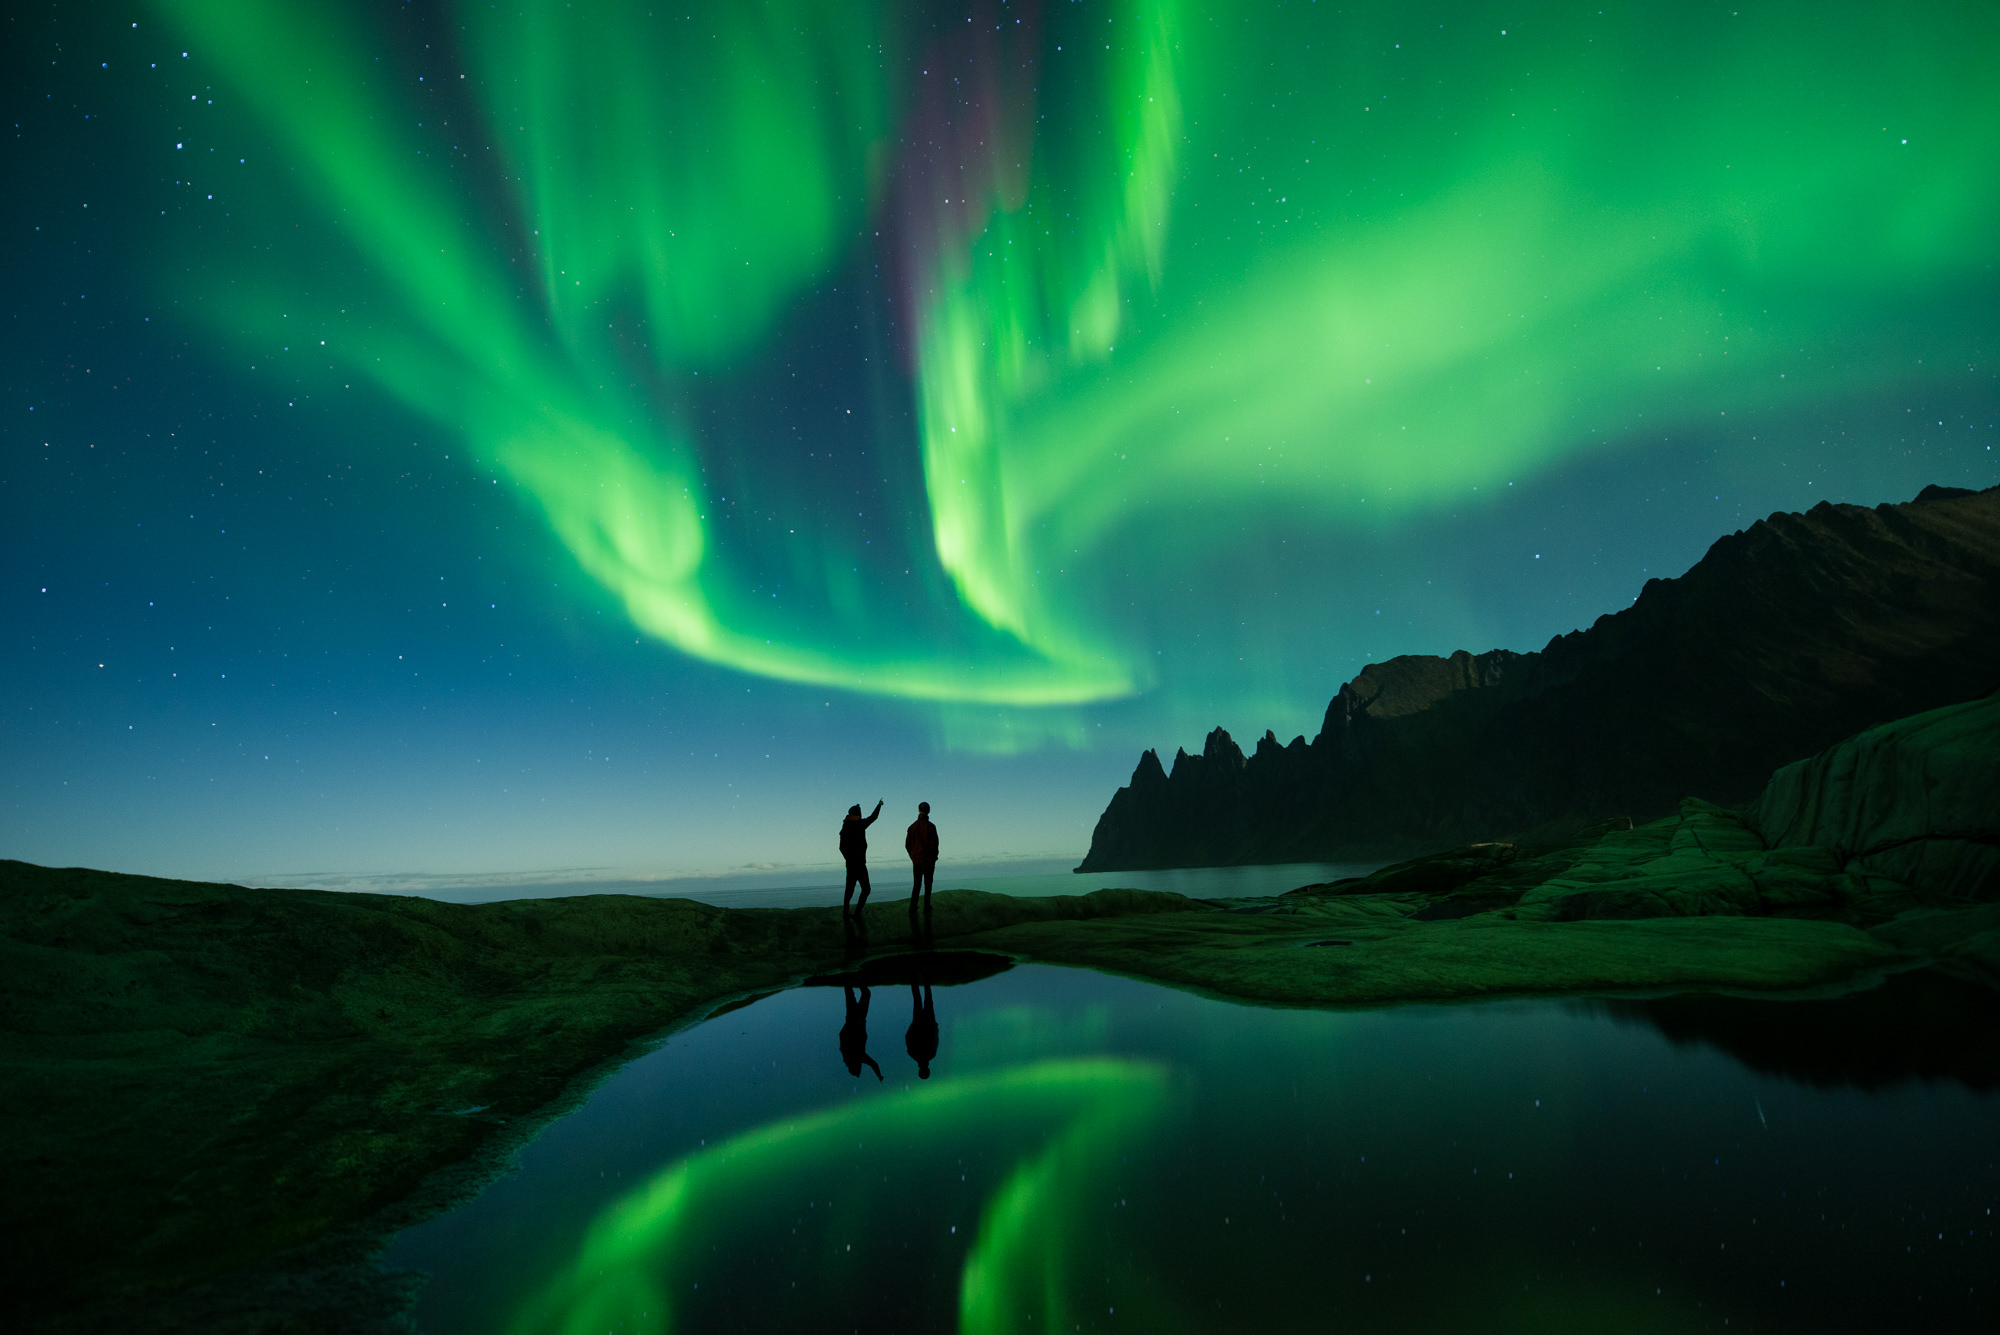 Two friends watching the northern lights in norway